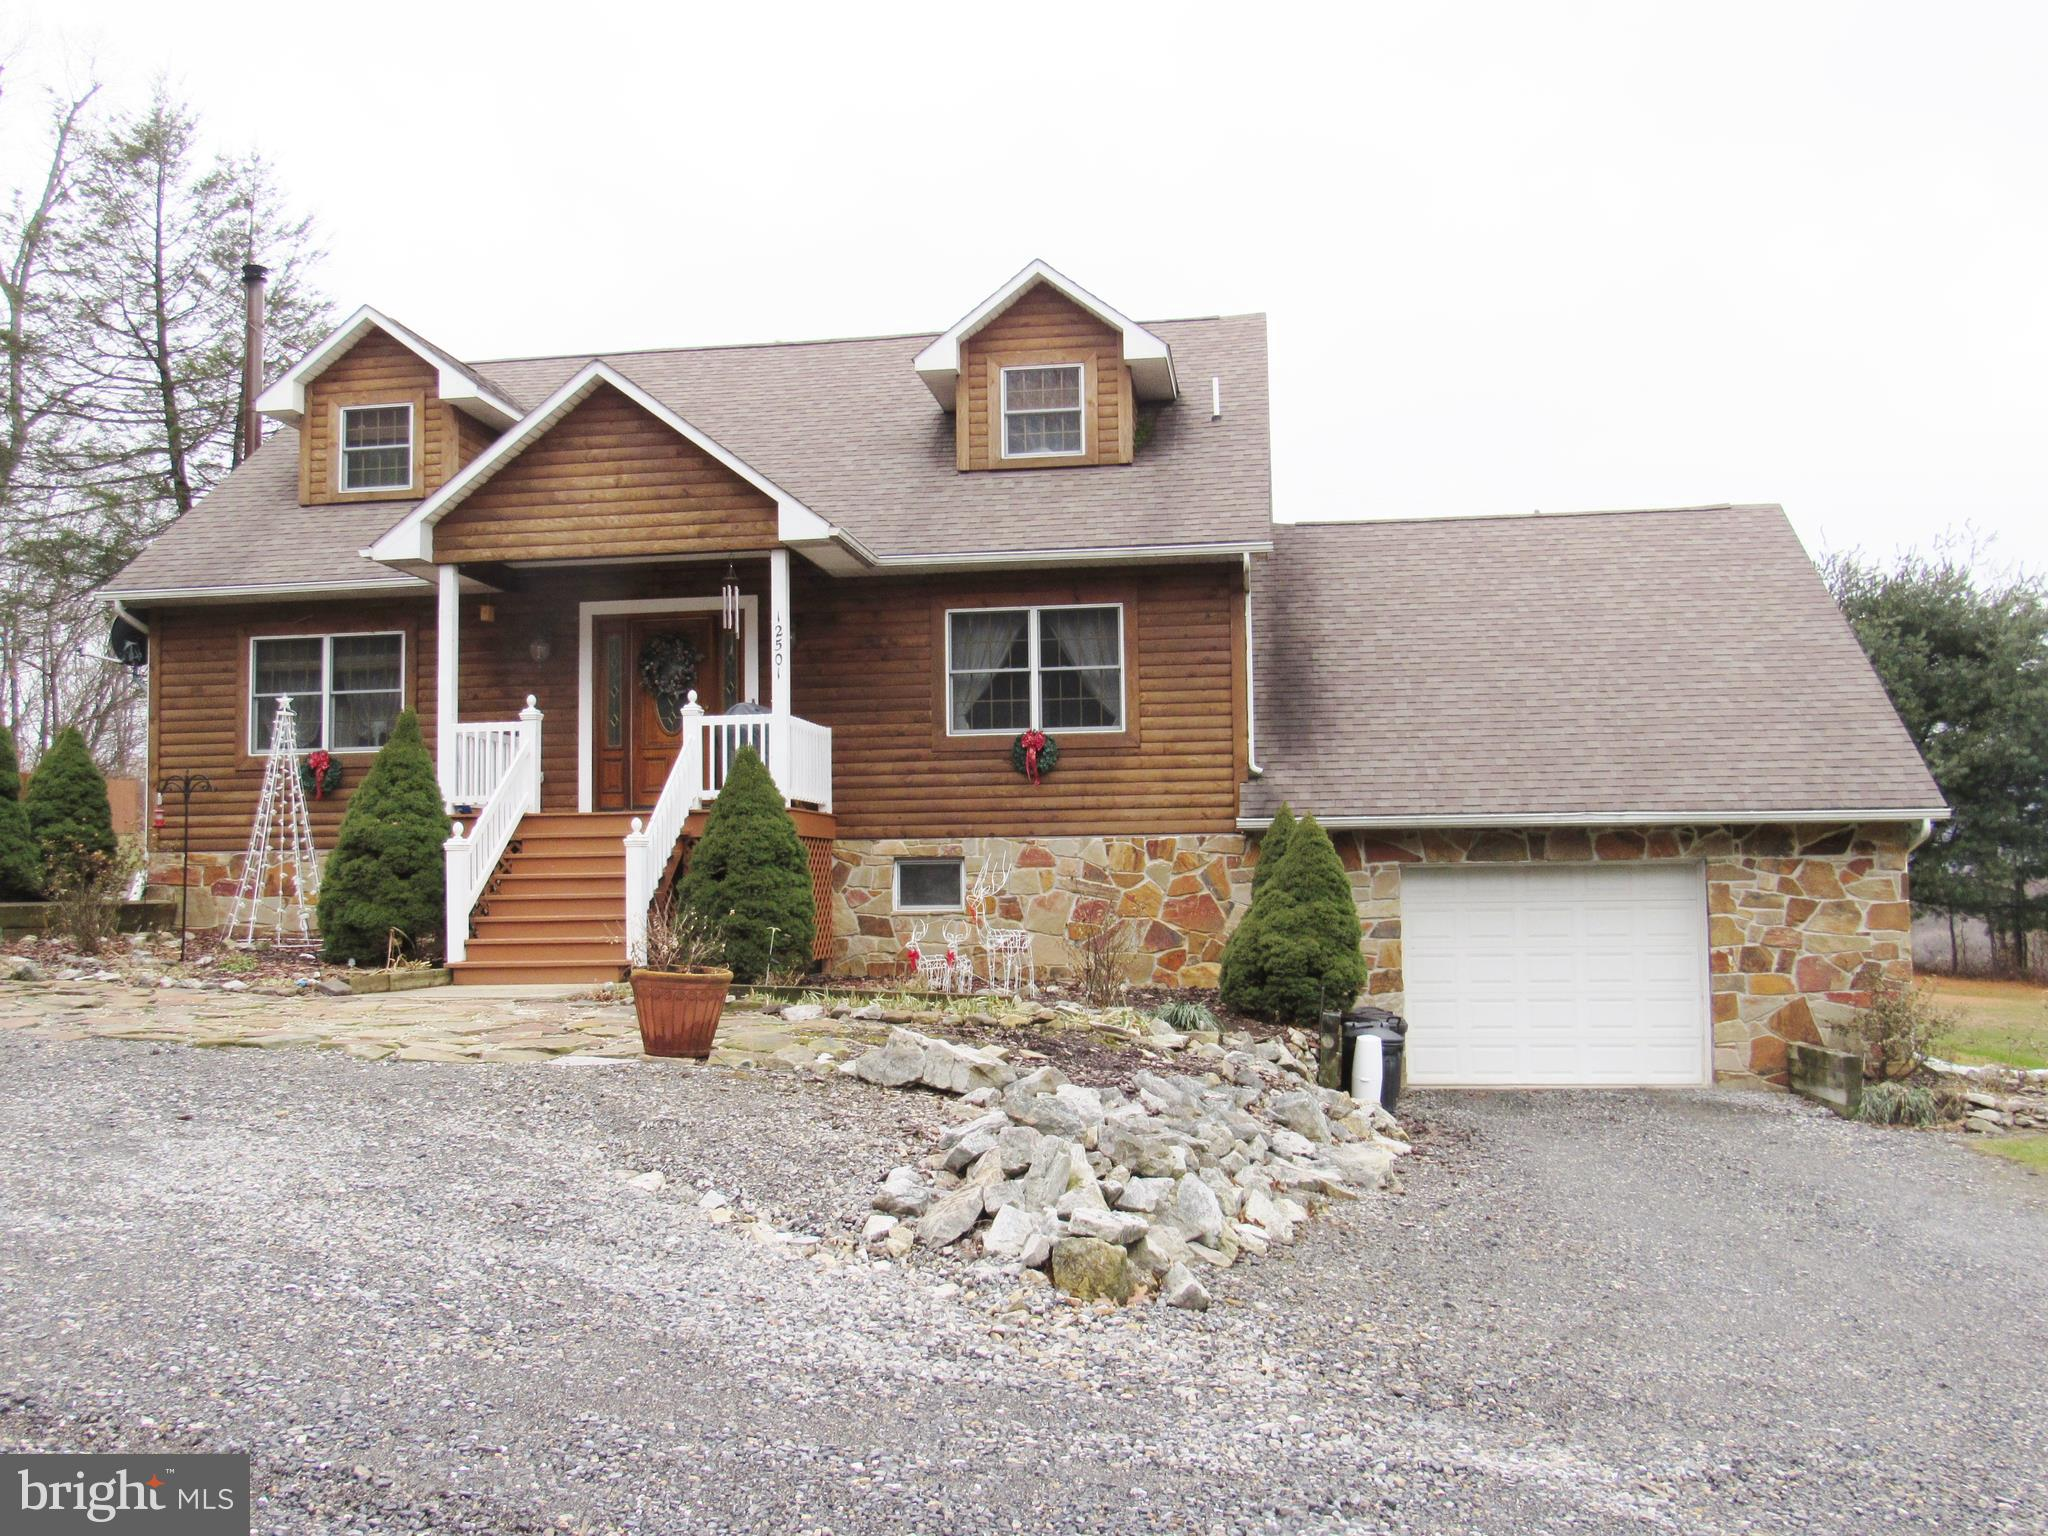 12501 VIEW TOP LANE, FLINTSTONE, MD 21530